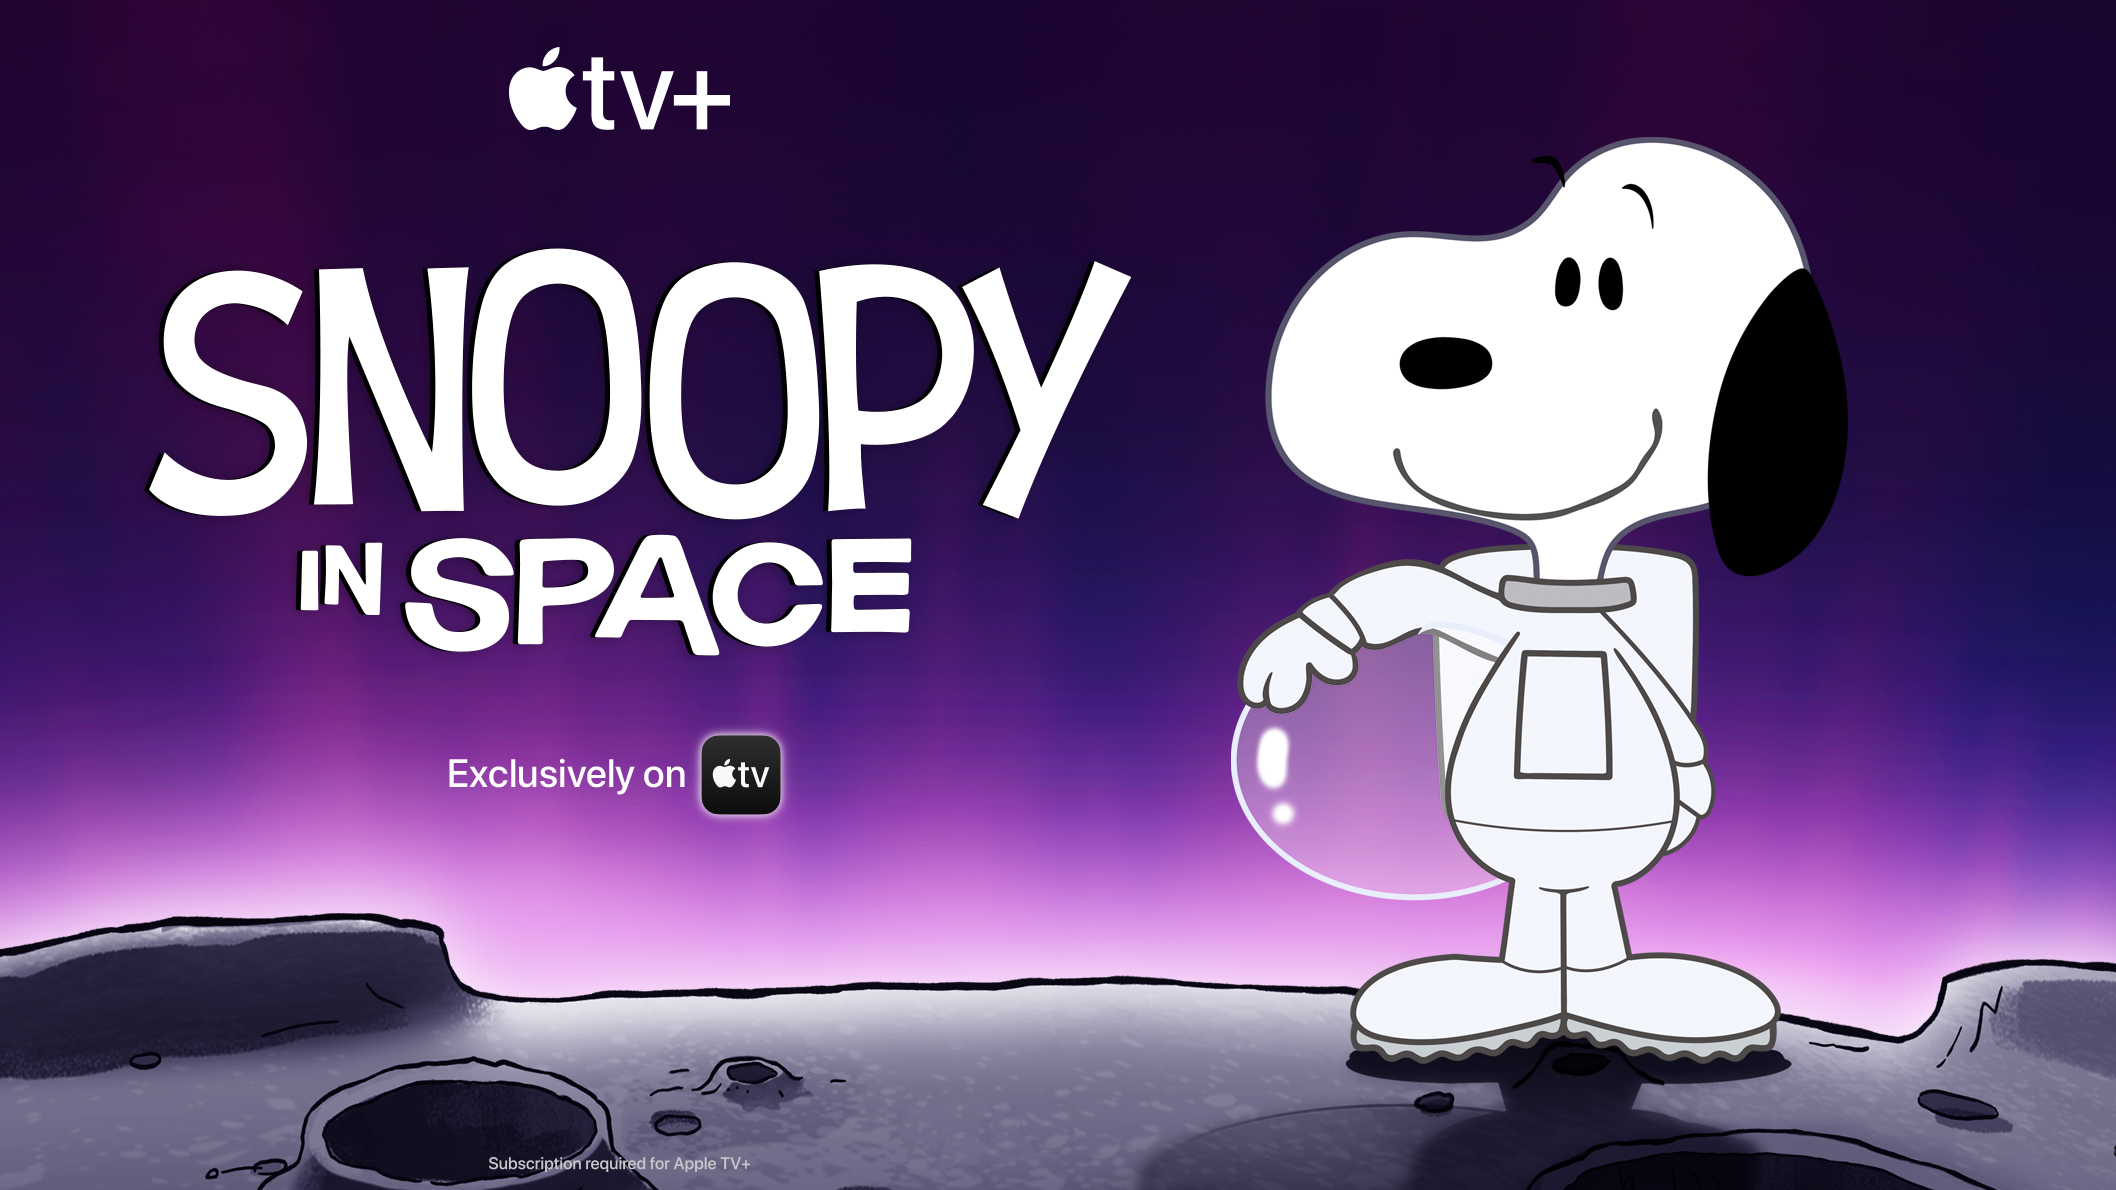 A white dog standing on the moon wearing a spacesuit and holding a helmet under his arm.